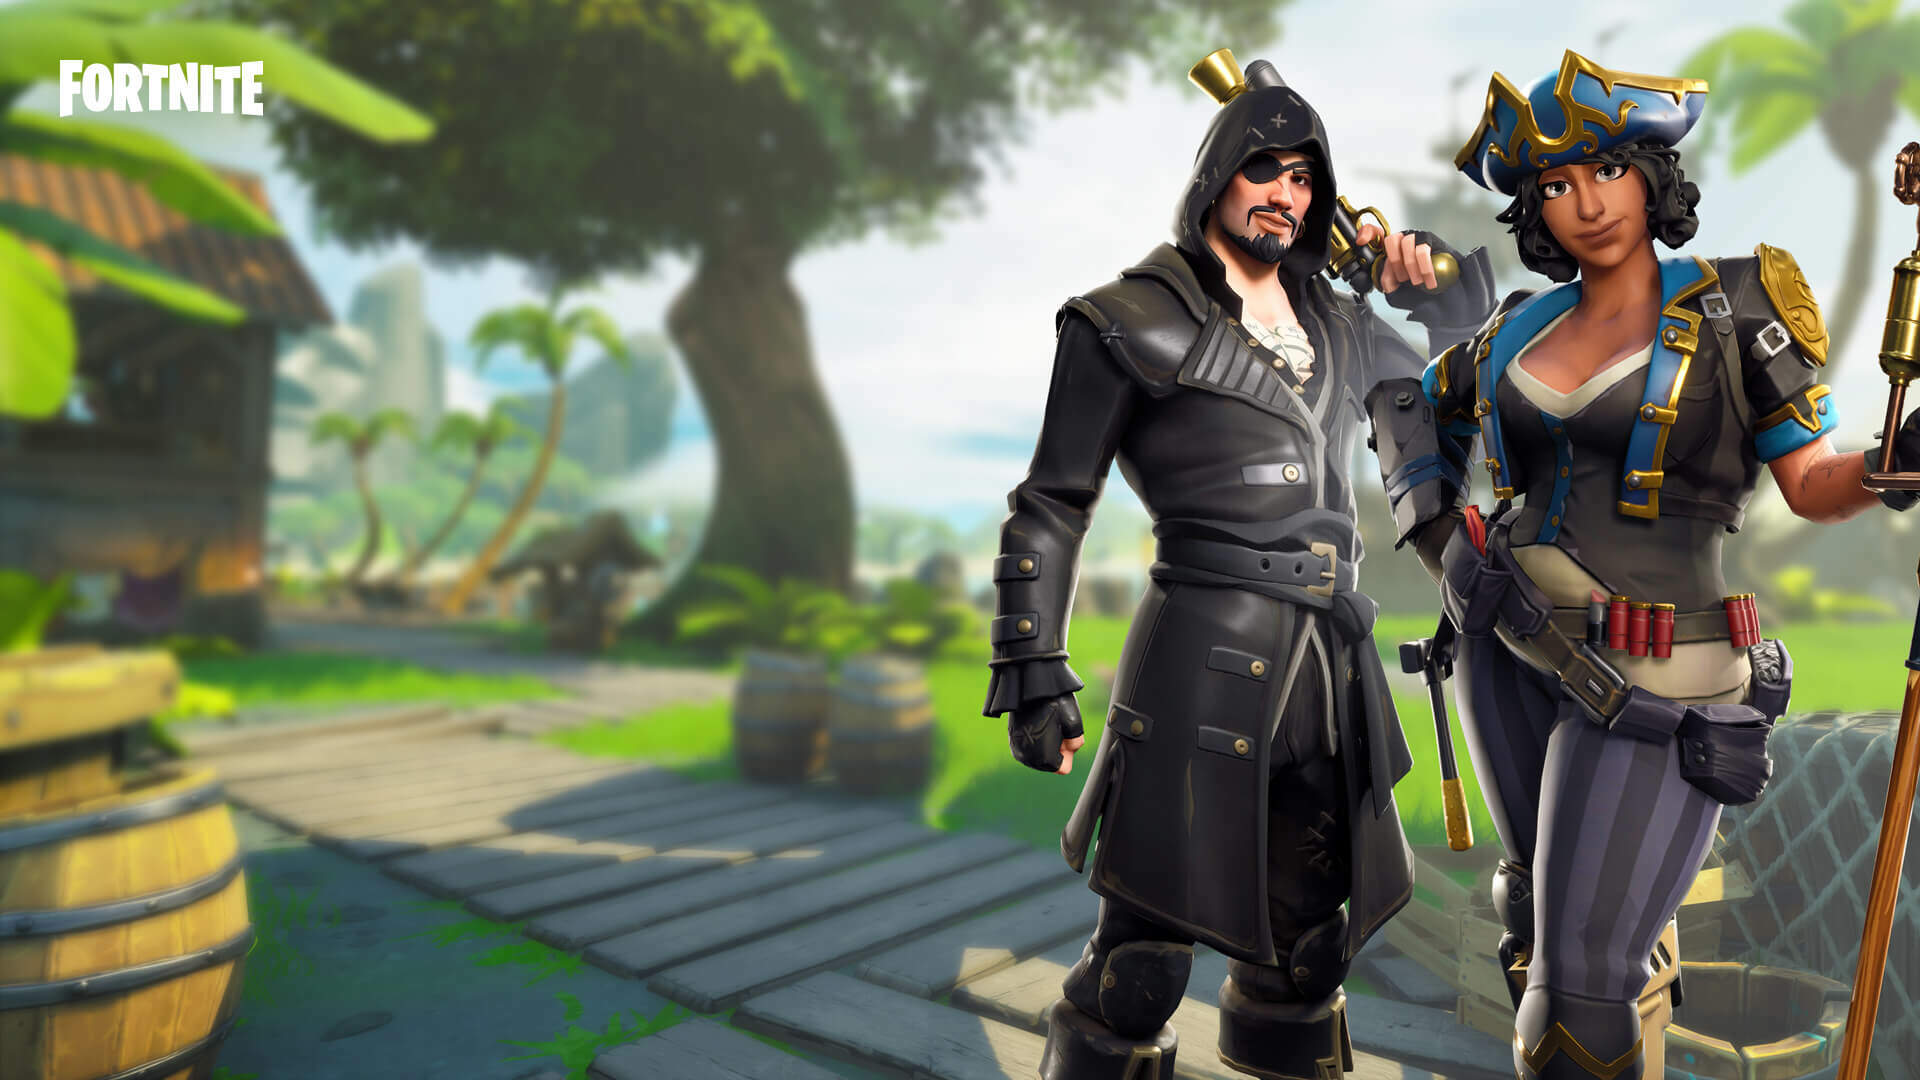 Fortnite Has Been Removed From the Google Play Store, Epic Files Lawsuit in Response